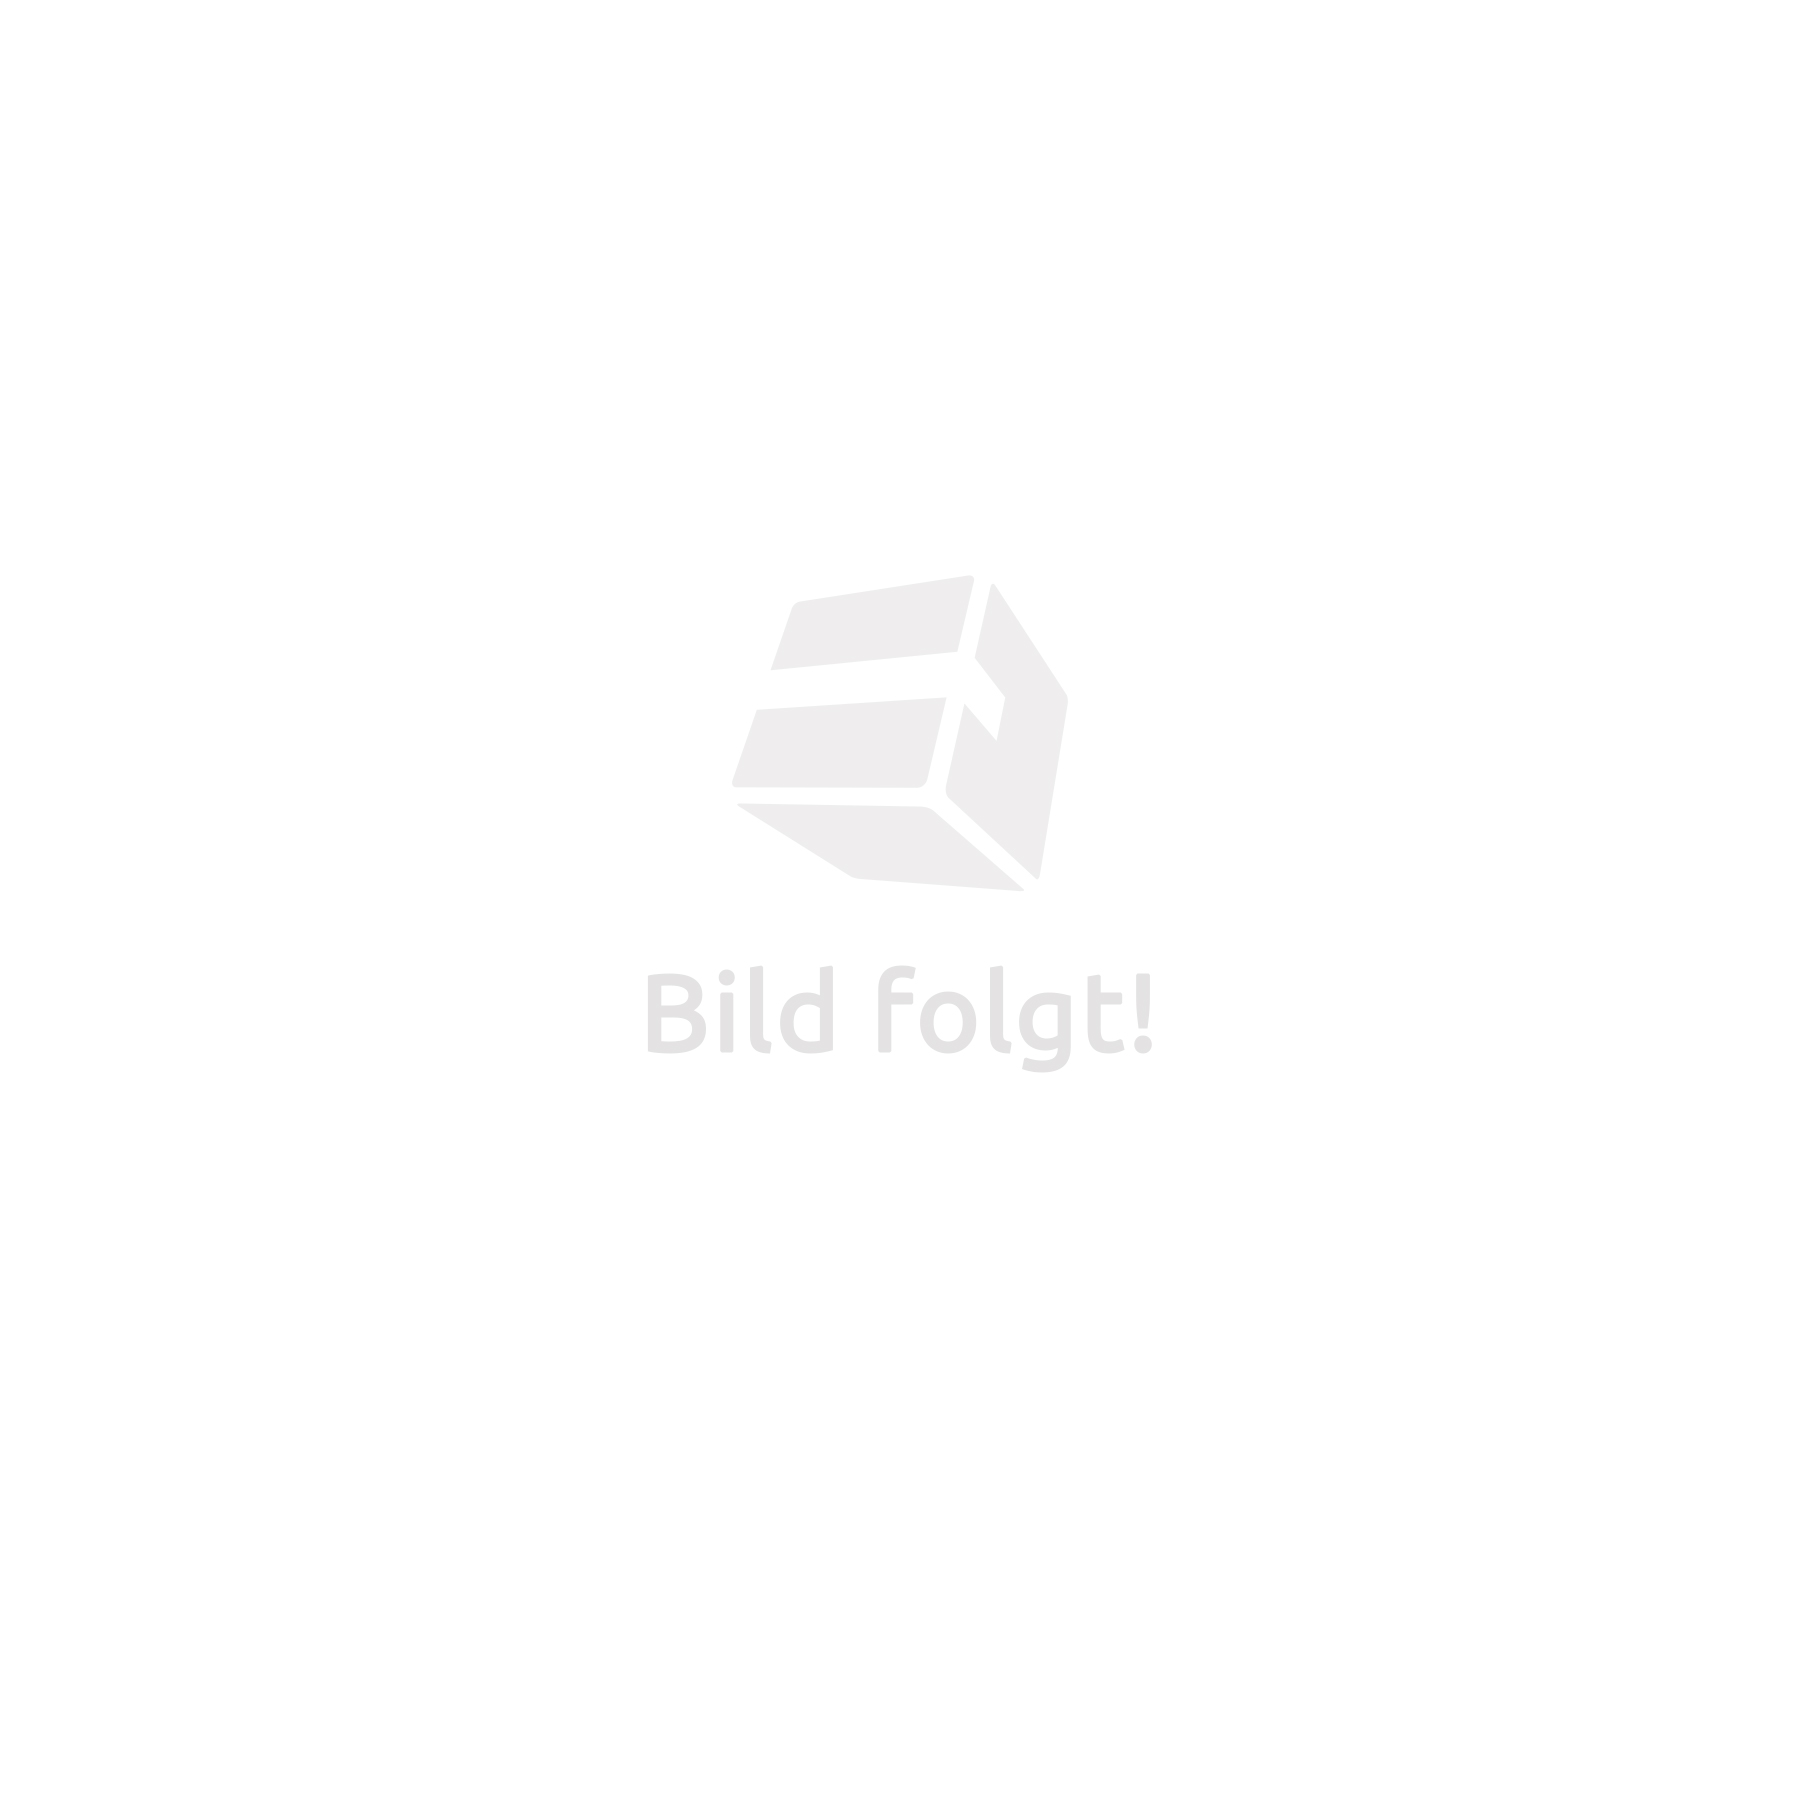 2 in 1 Crosstrainer und Heimtrainer mit Trainingscomputer